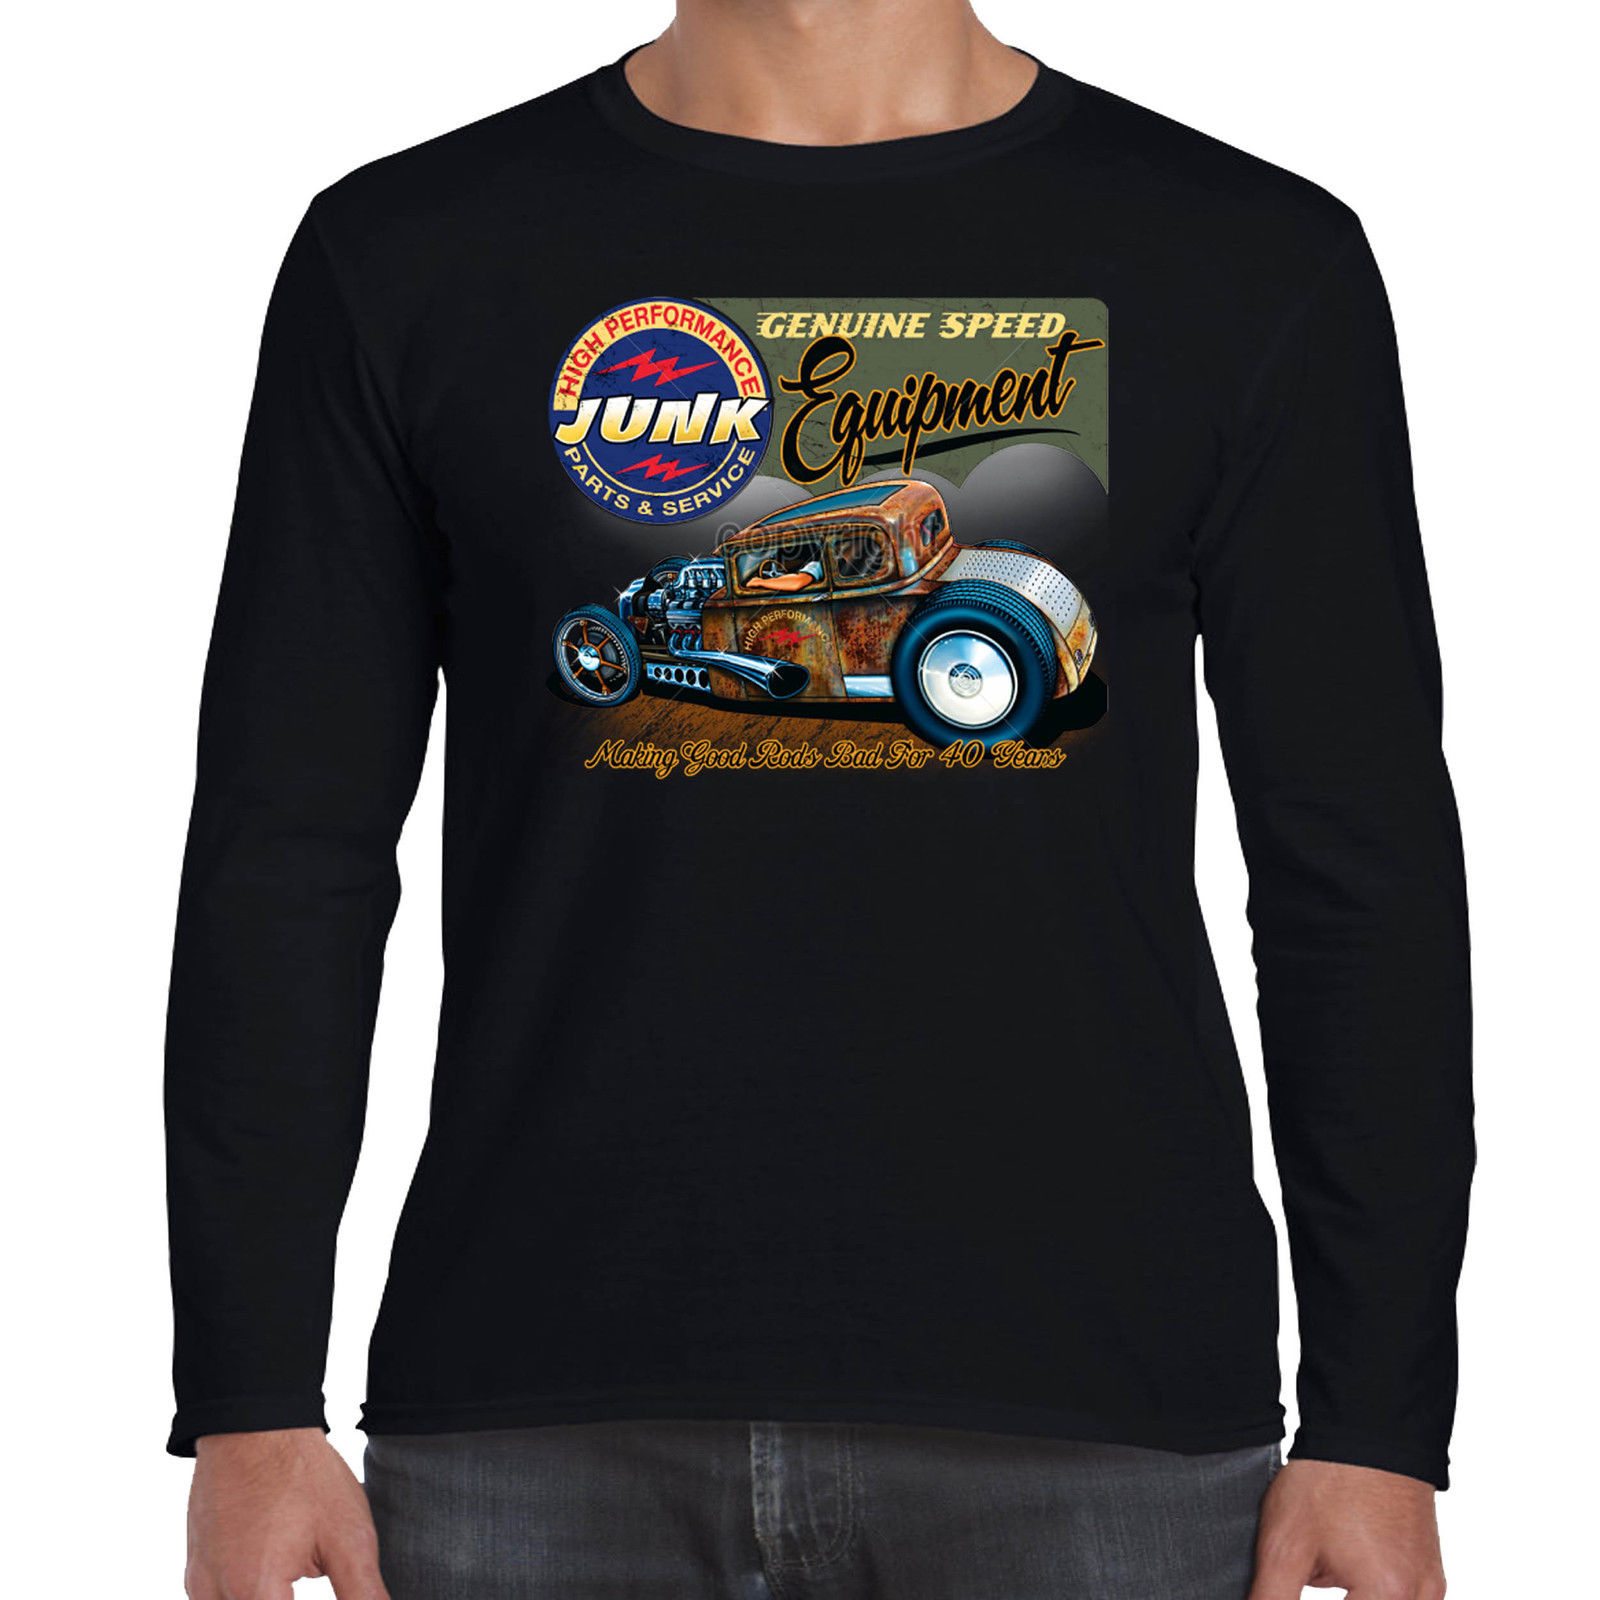 a28101b3d Mens Hotrod 58 Long Sleeve T Shirt Junk Garage Vintage V8 Rat Rod Custom Car  30